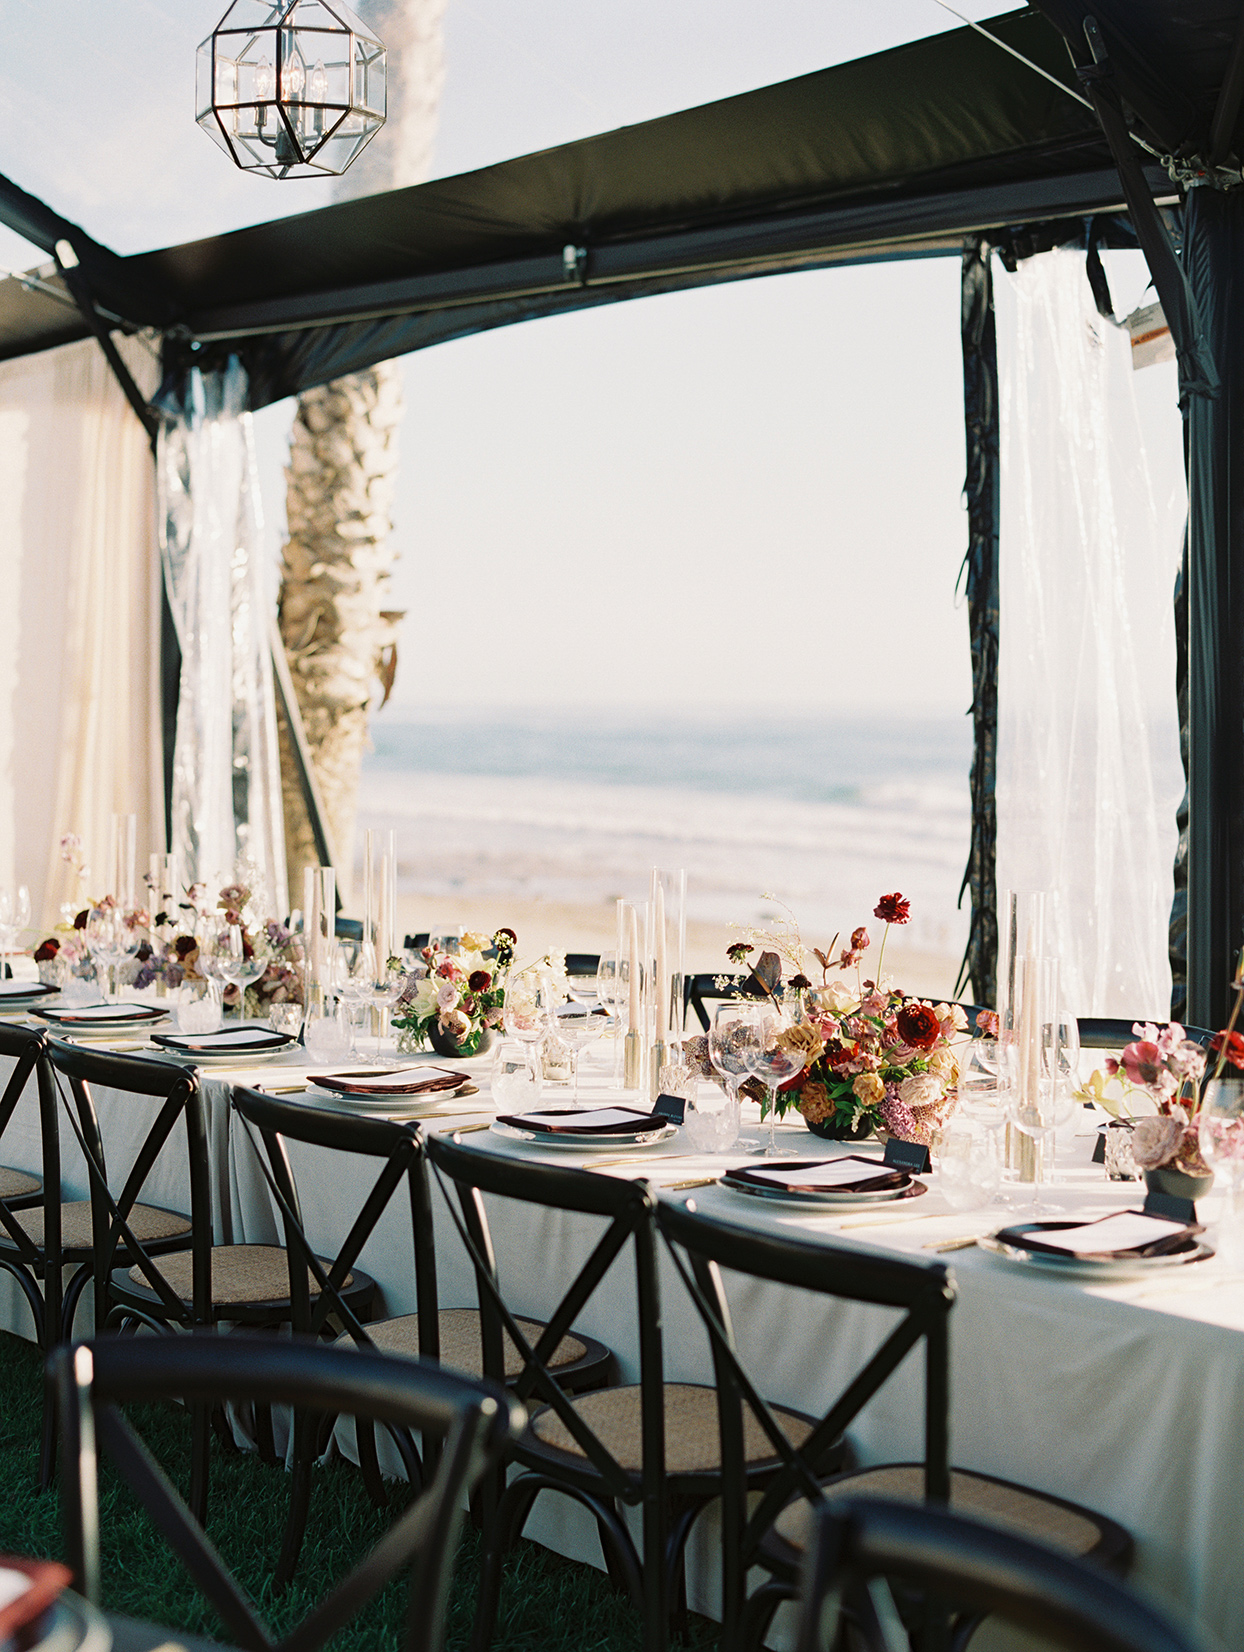 long reception table with black chairs overlooking beach